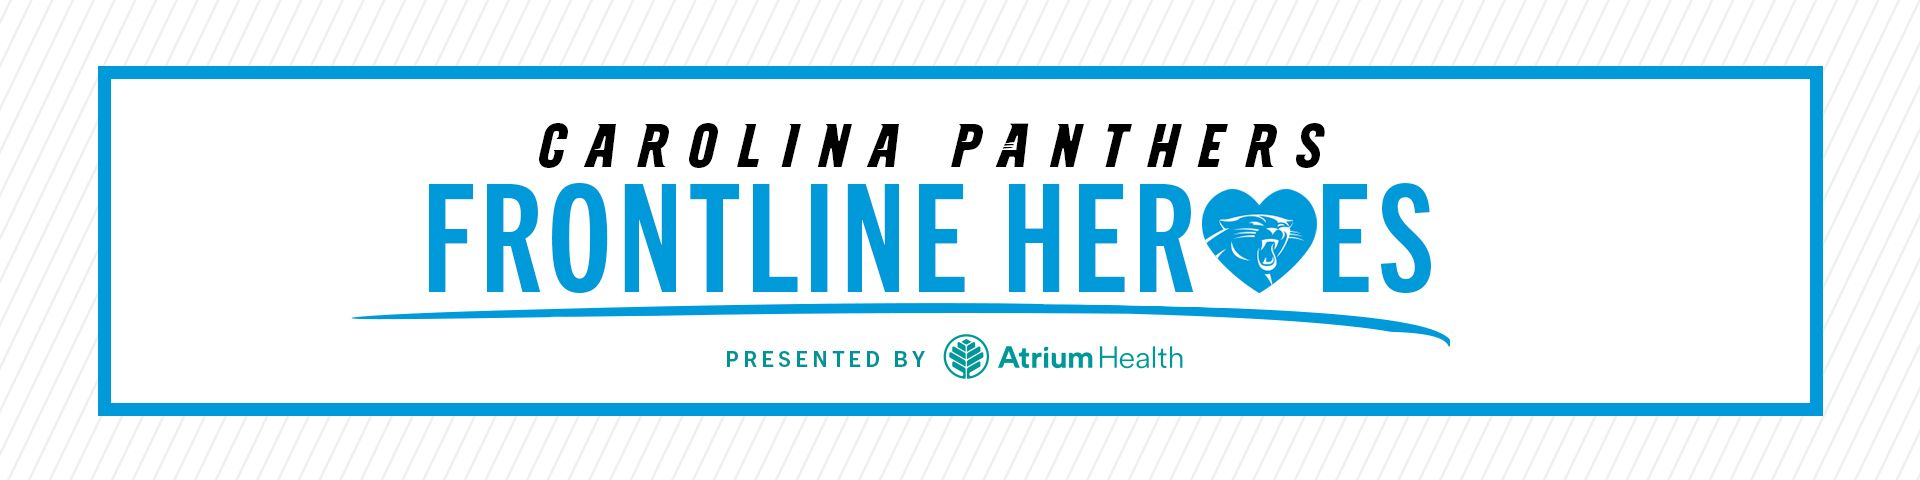 Carolina Panthers Frontline Heroes, presented by Atrium Health